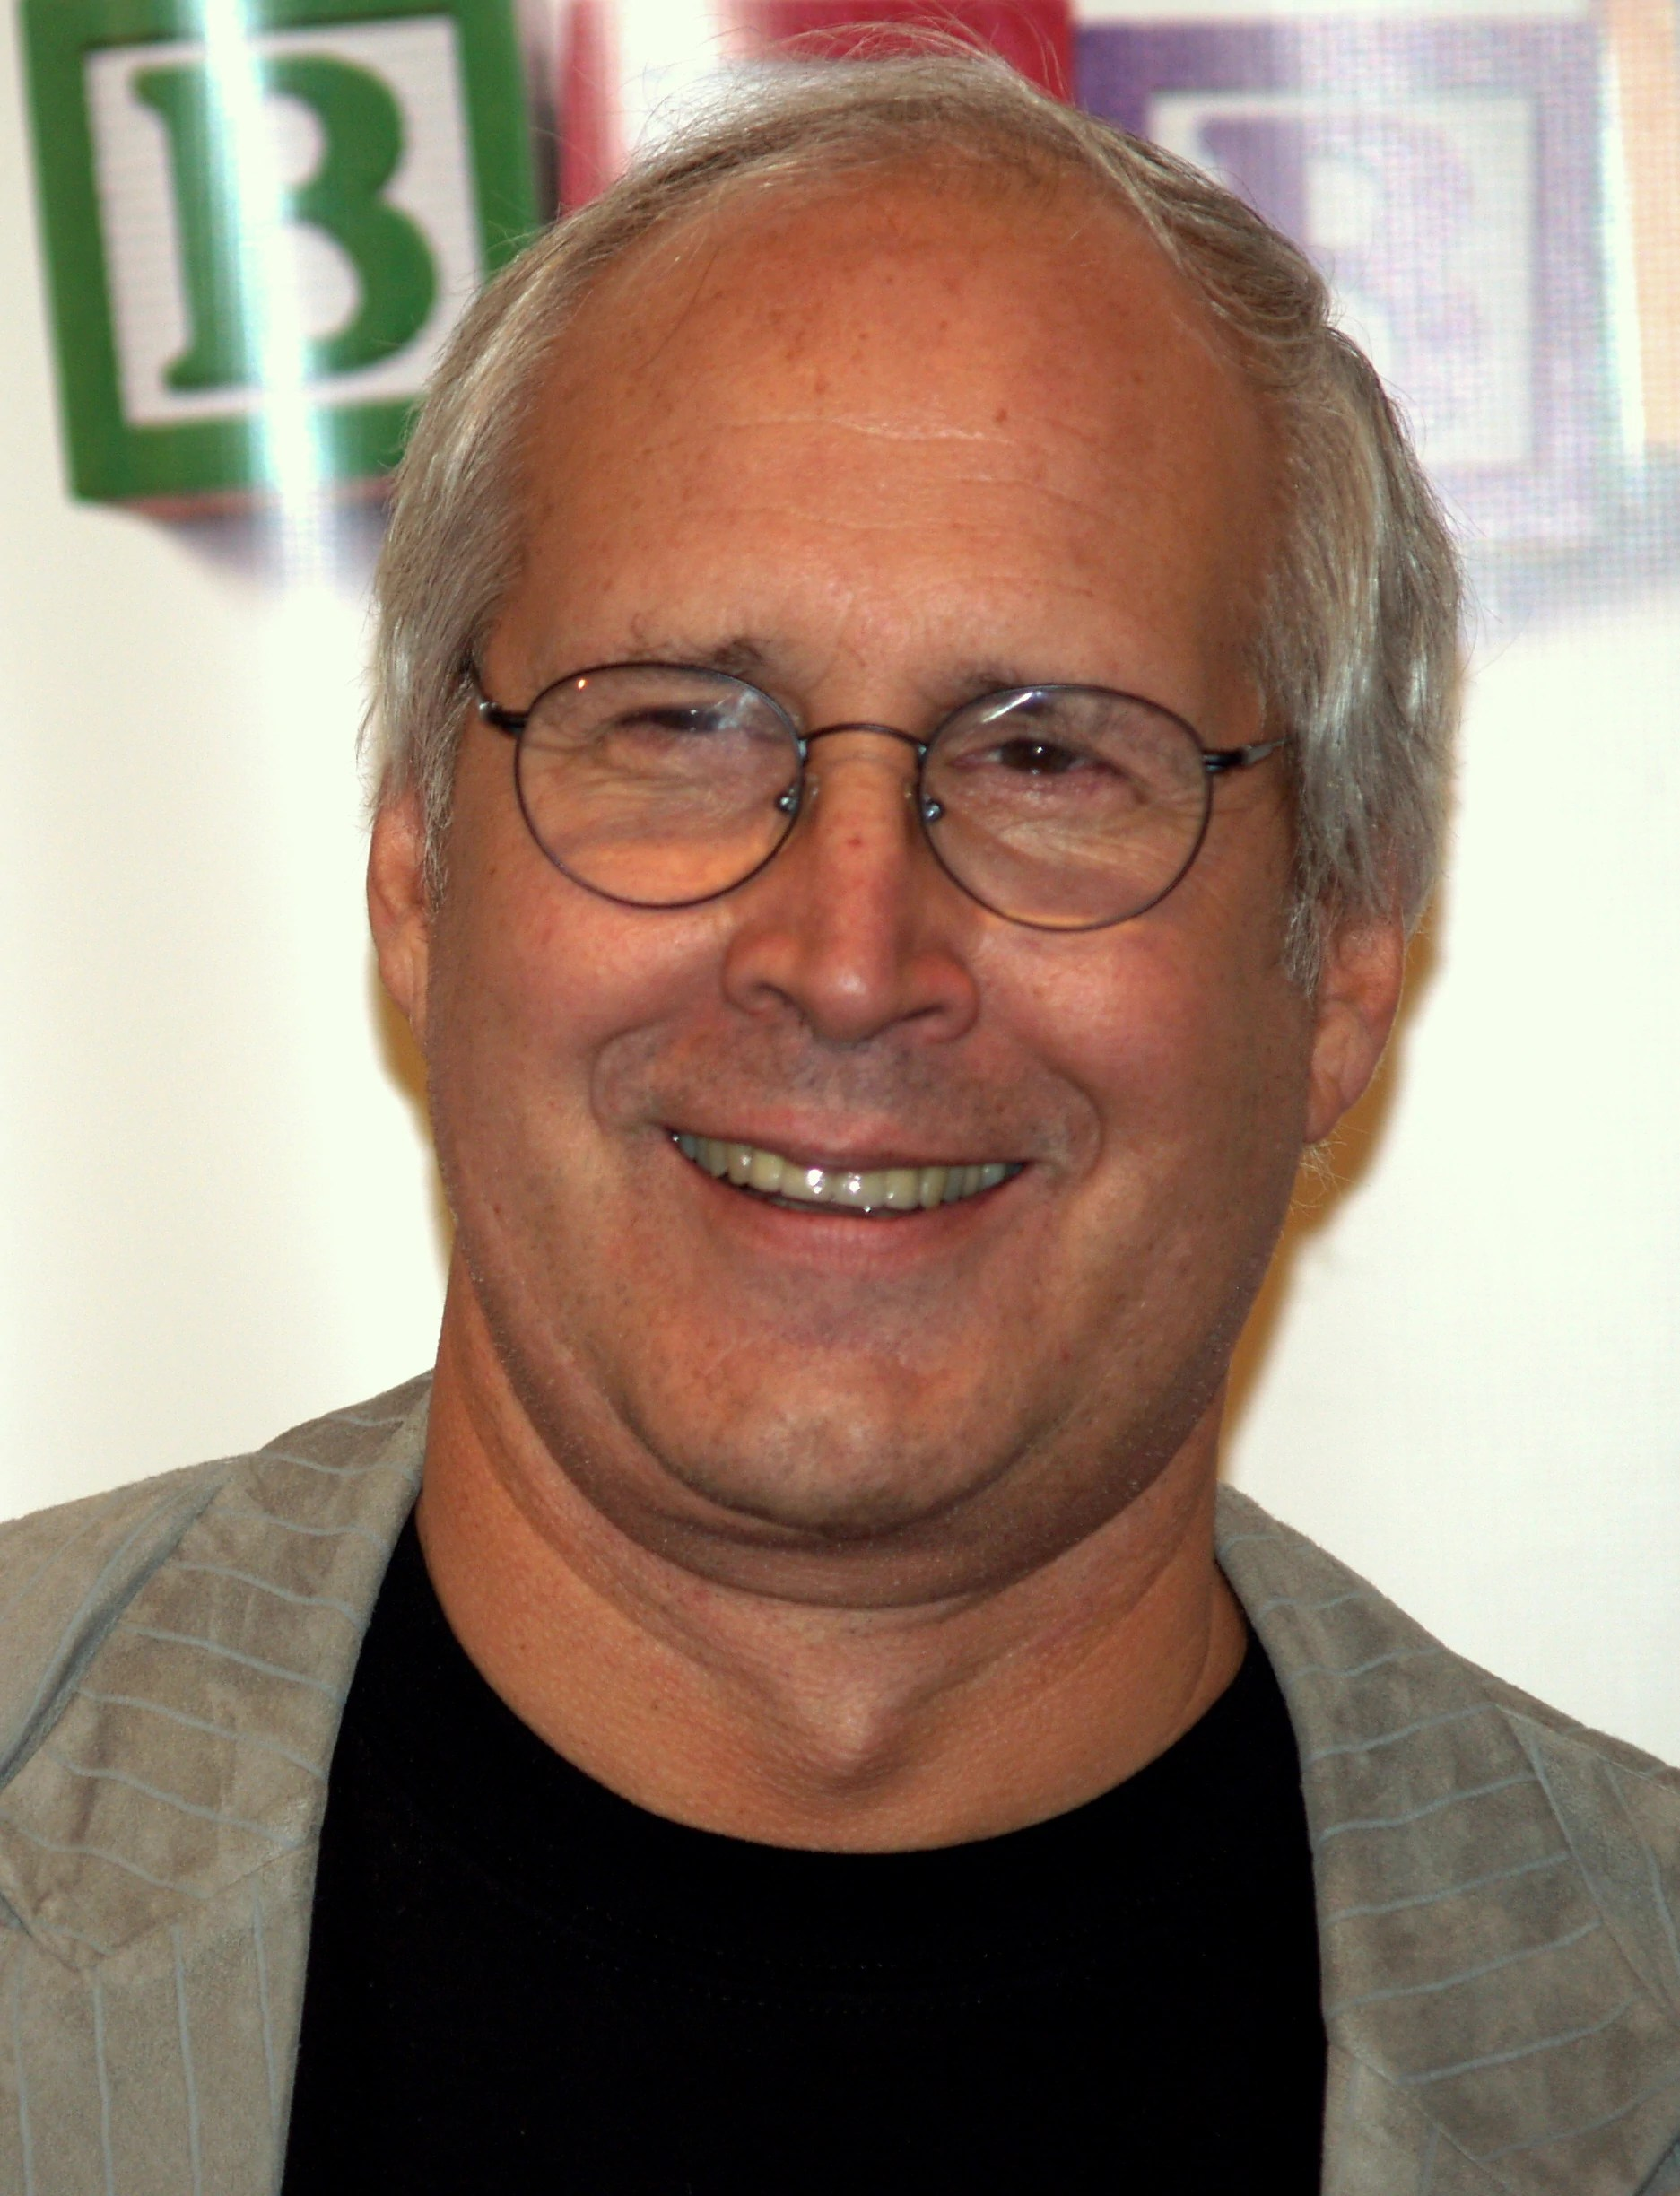 Chevy Chase   Channel 101 Wiki   FANDOM powered by Wikia Chevy Chase